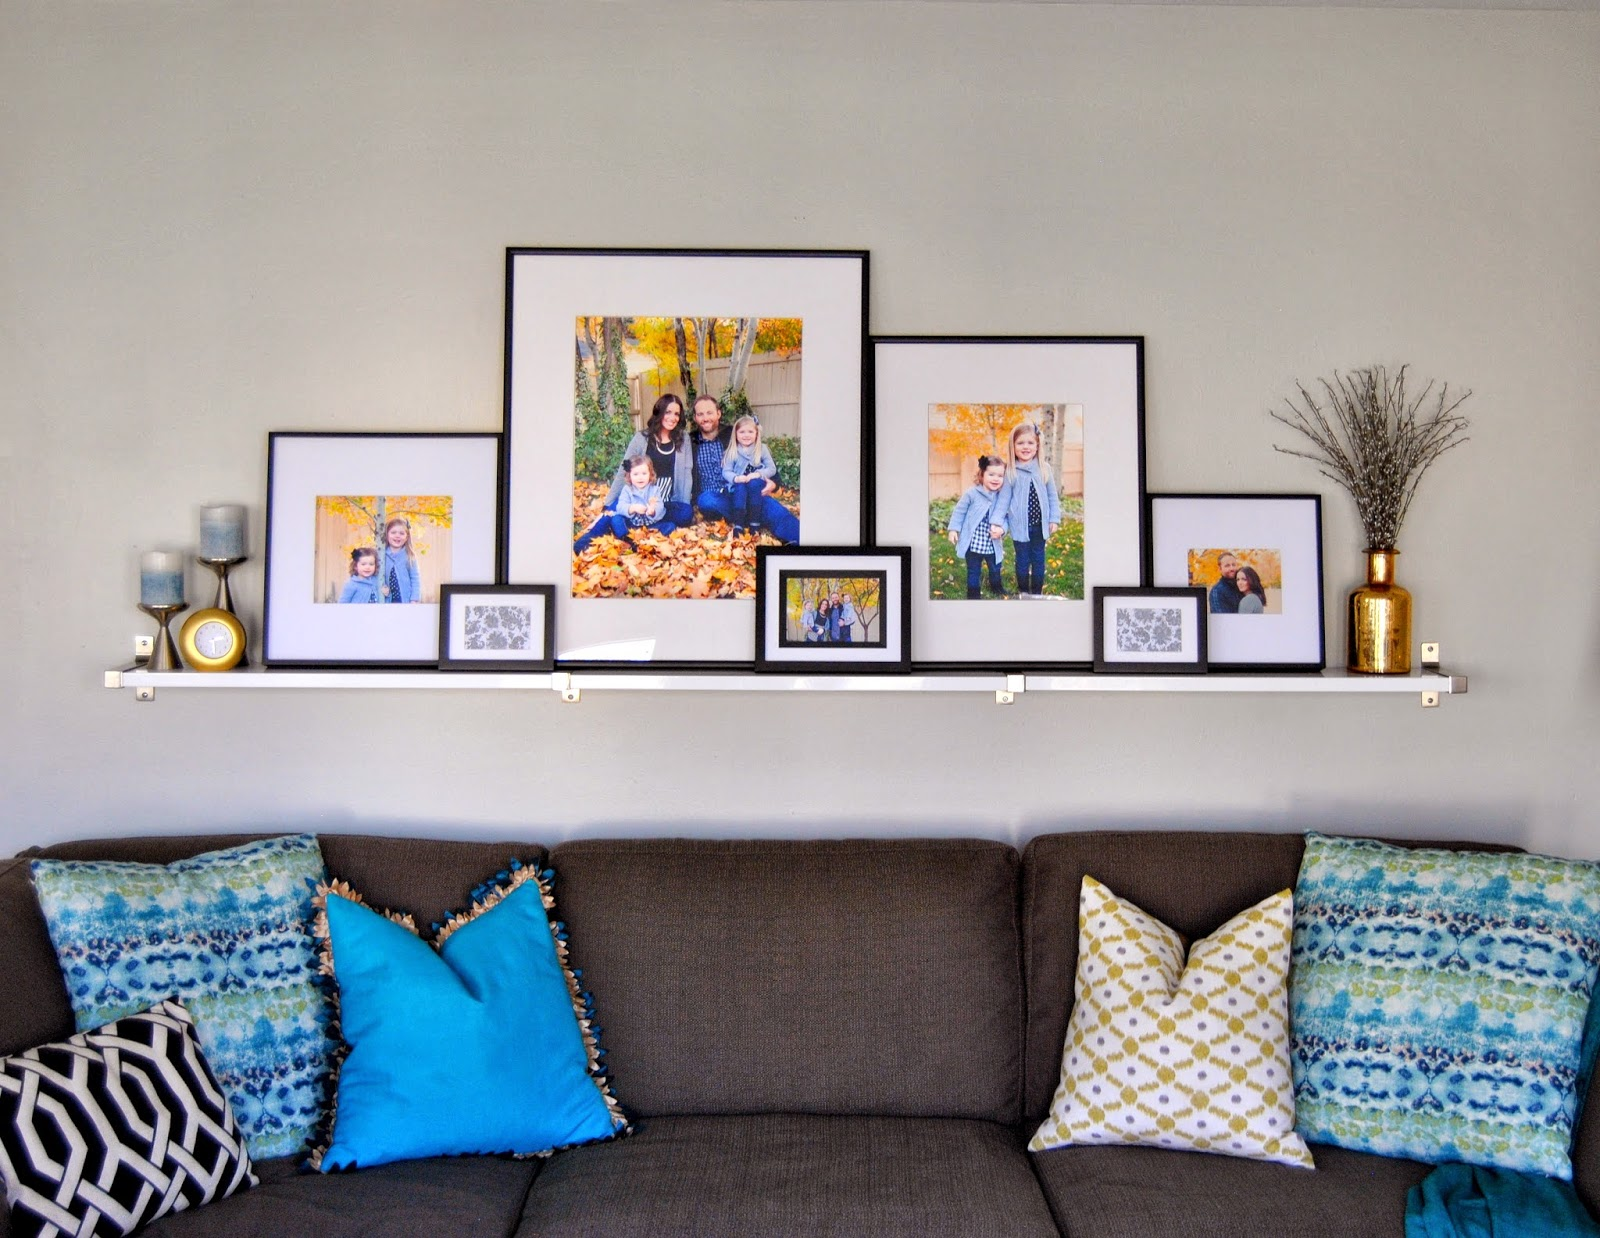 turquoise, gray paint, white shelf, black and white, gallery wall, silver and gold, sectional, custom pillows, diy, low cost decorating, studio 7 interior design, interior design, interiors, interior designer, salt lake city, utah, ikea, aloof gray, sherwin williams